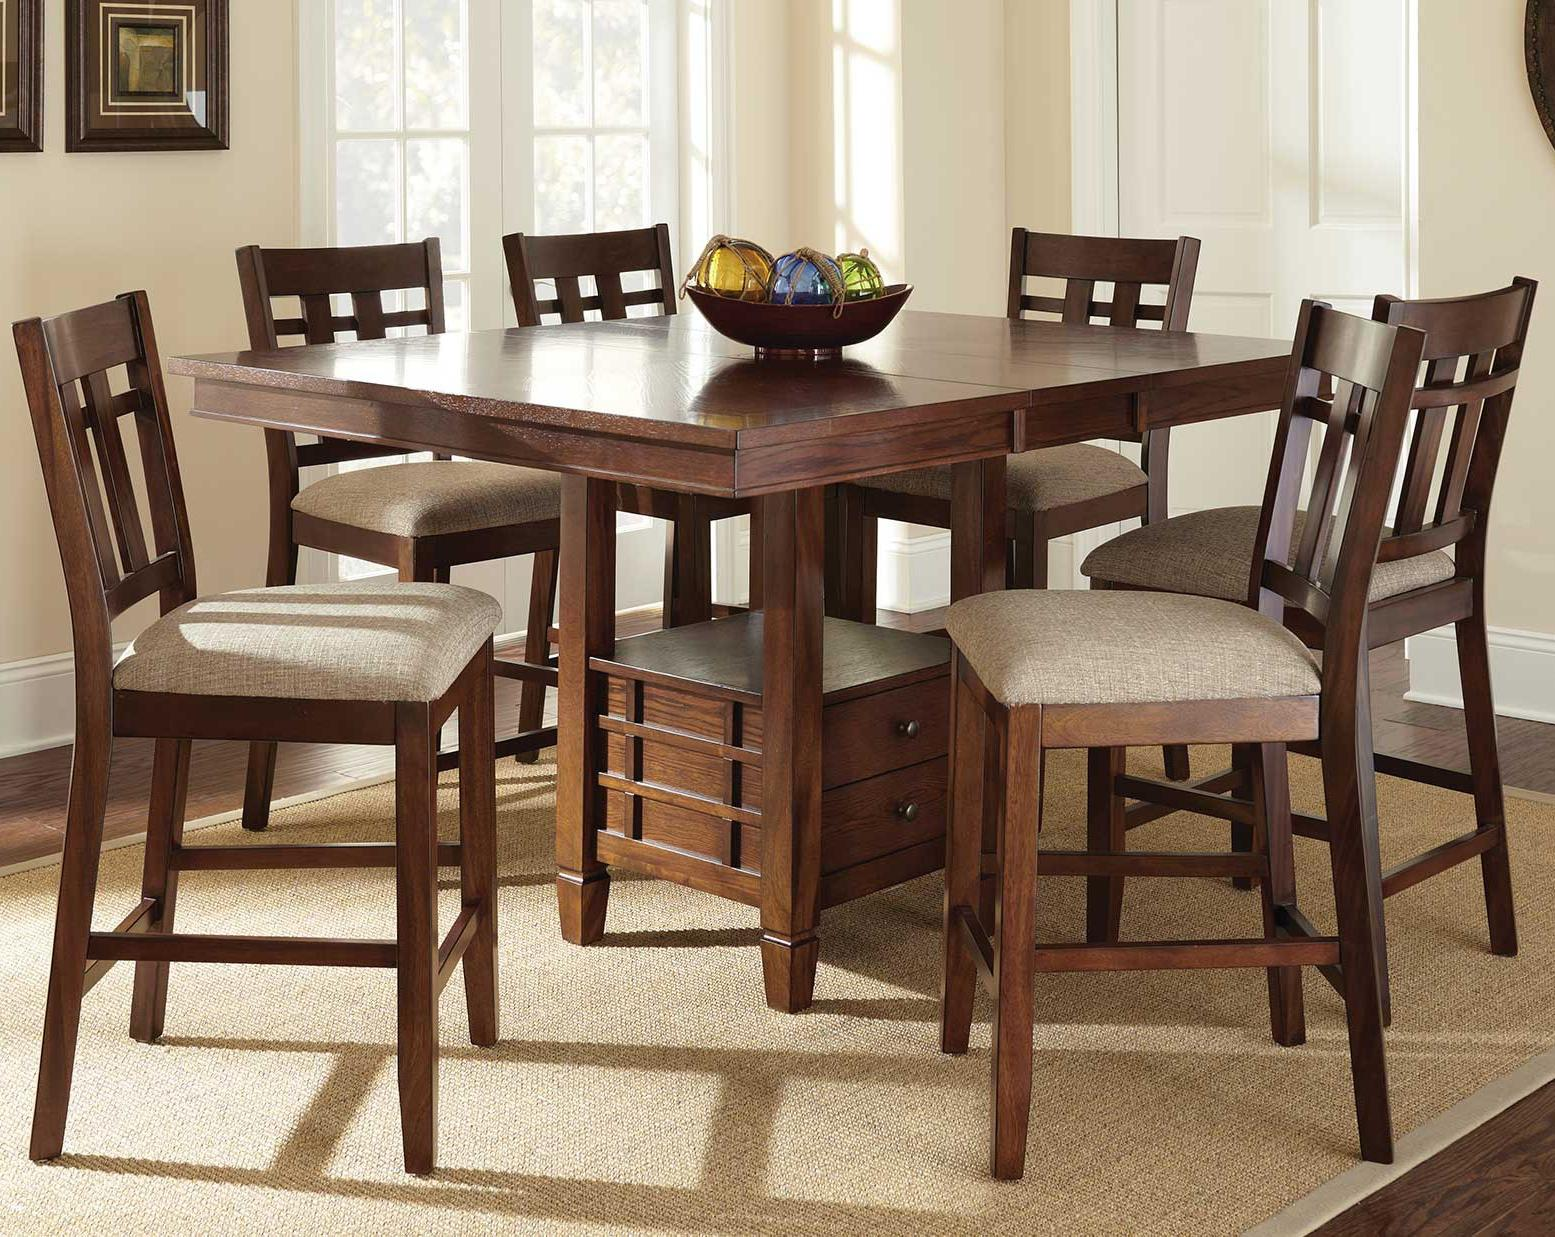 Steve Silver Bolton 7 Piece Counter Height Dining Set - Item Number BO4848PB+T & Steve Silver Bolton 7 Piece Counter Height Dining Set | Northeast ...